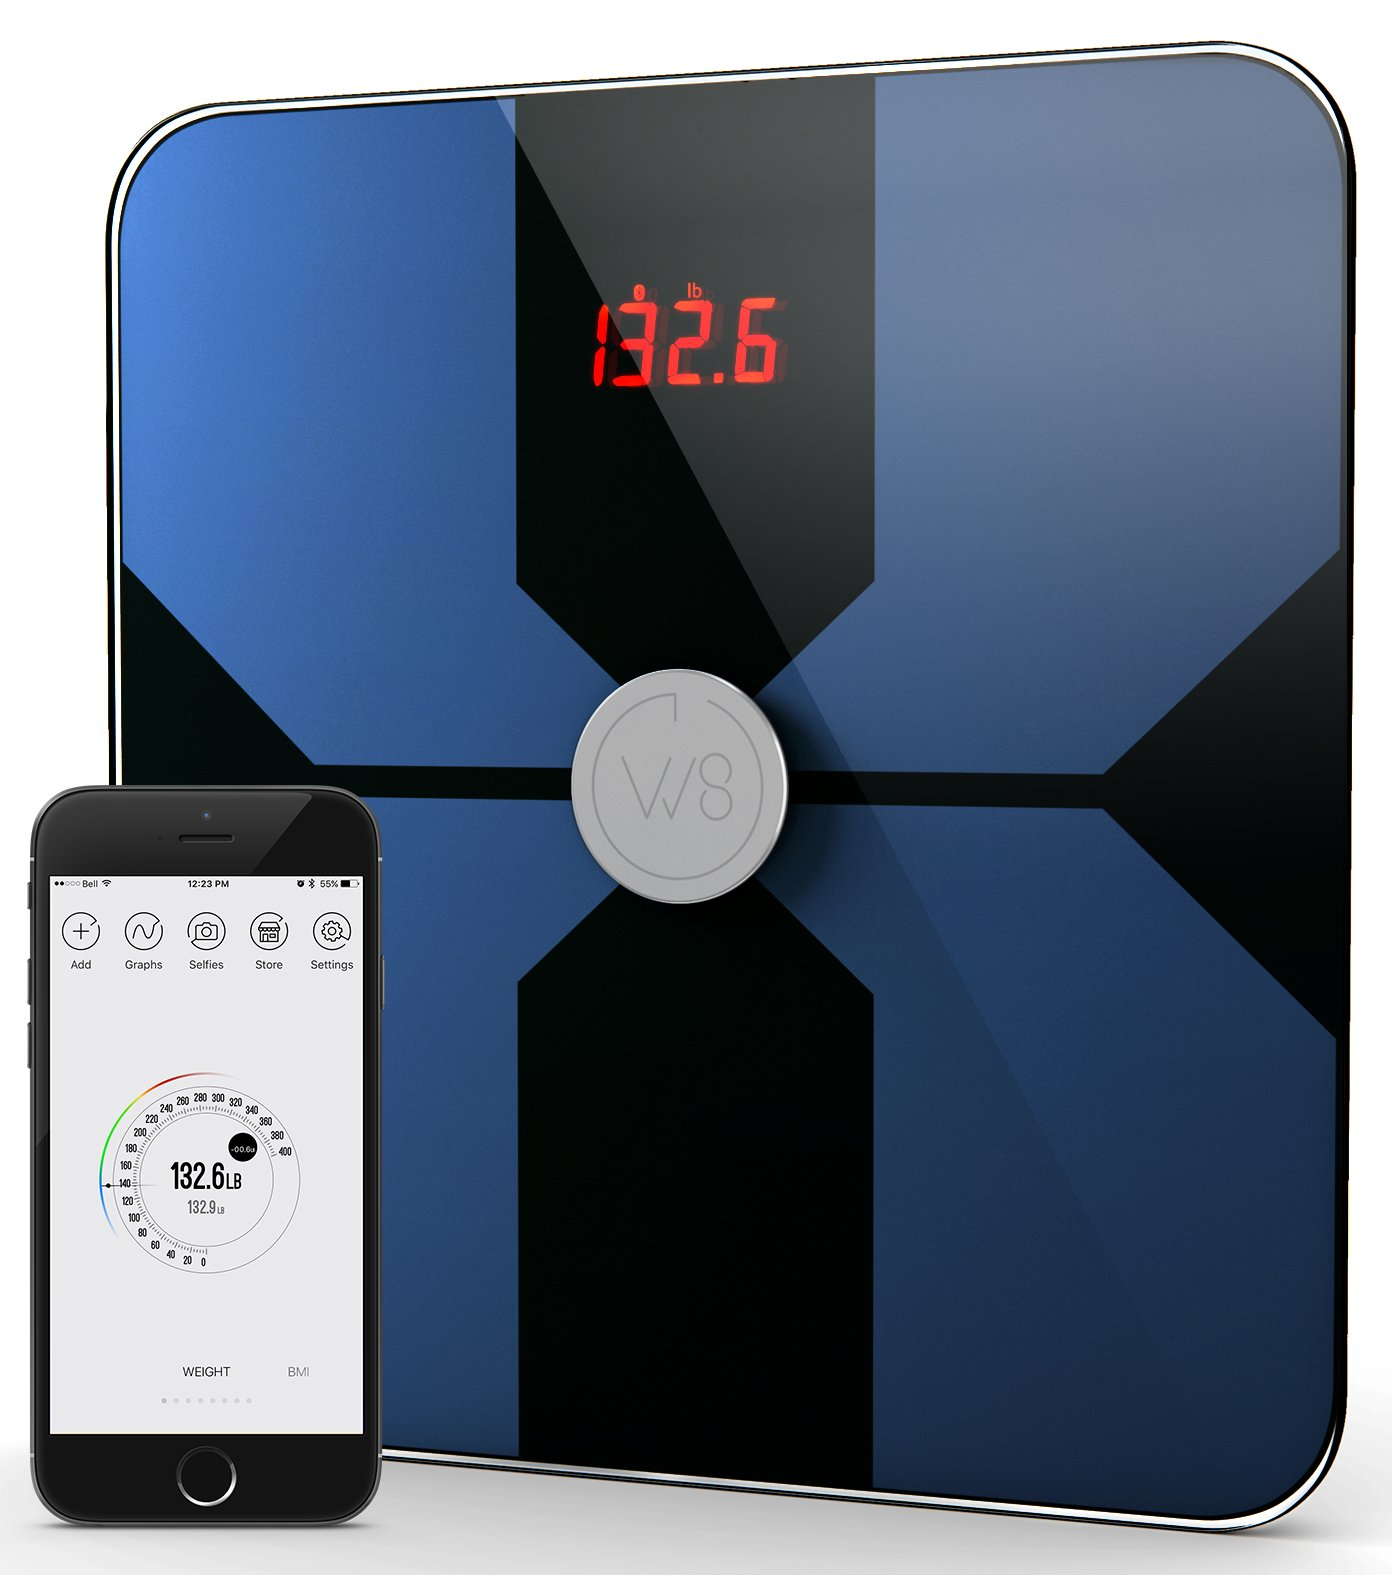 W8 Smart Body Fat Weight Scale - Digital Bluetooth Connected w/Fitness APP & Body Composition Monitor: BMI, Visceral Fat, Muscle Mass, Body Water, Calories & Bone Mass (Dark Blue)